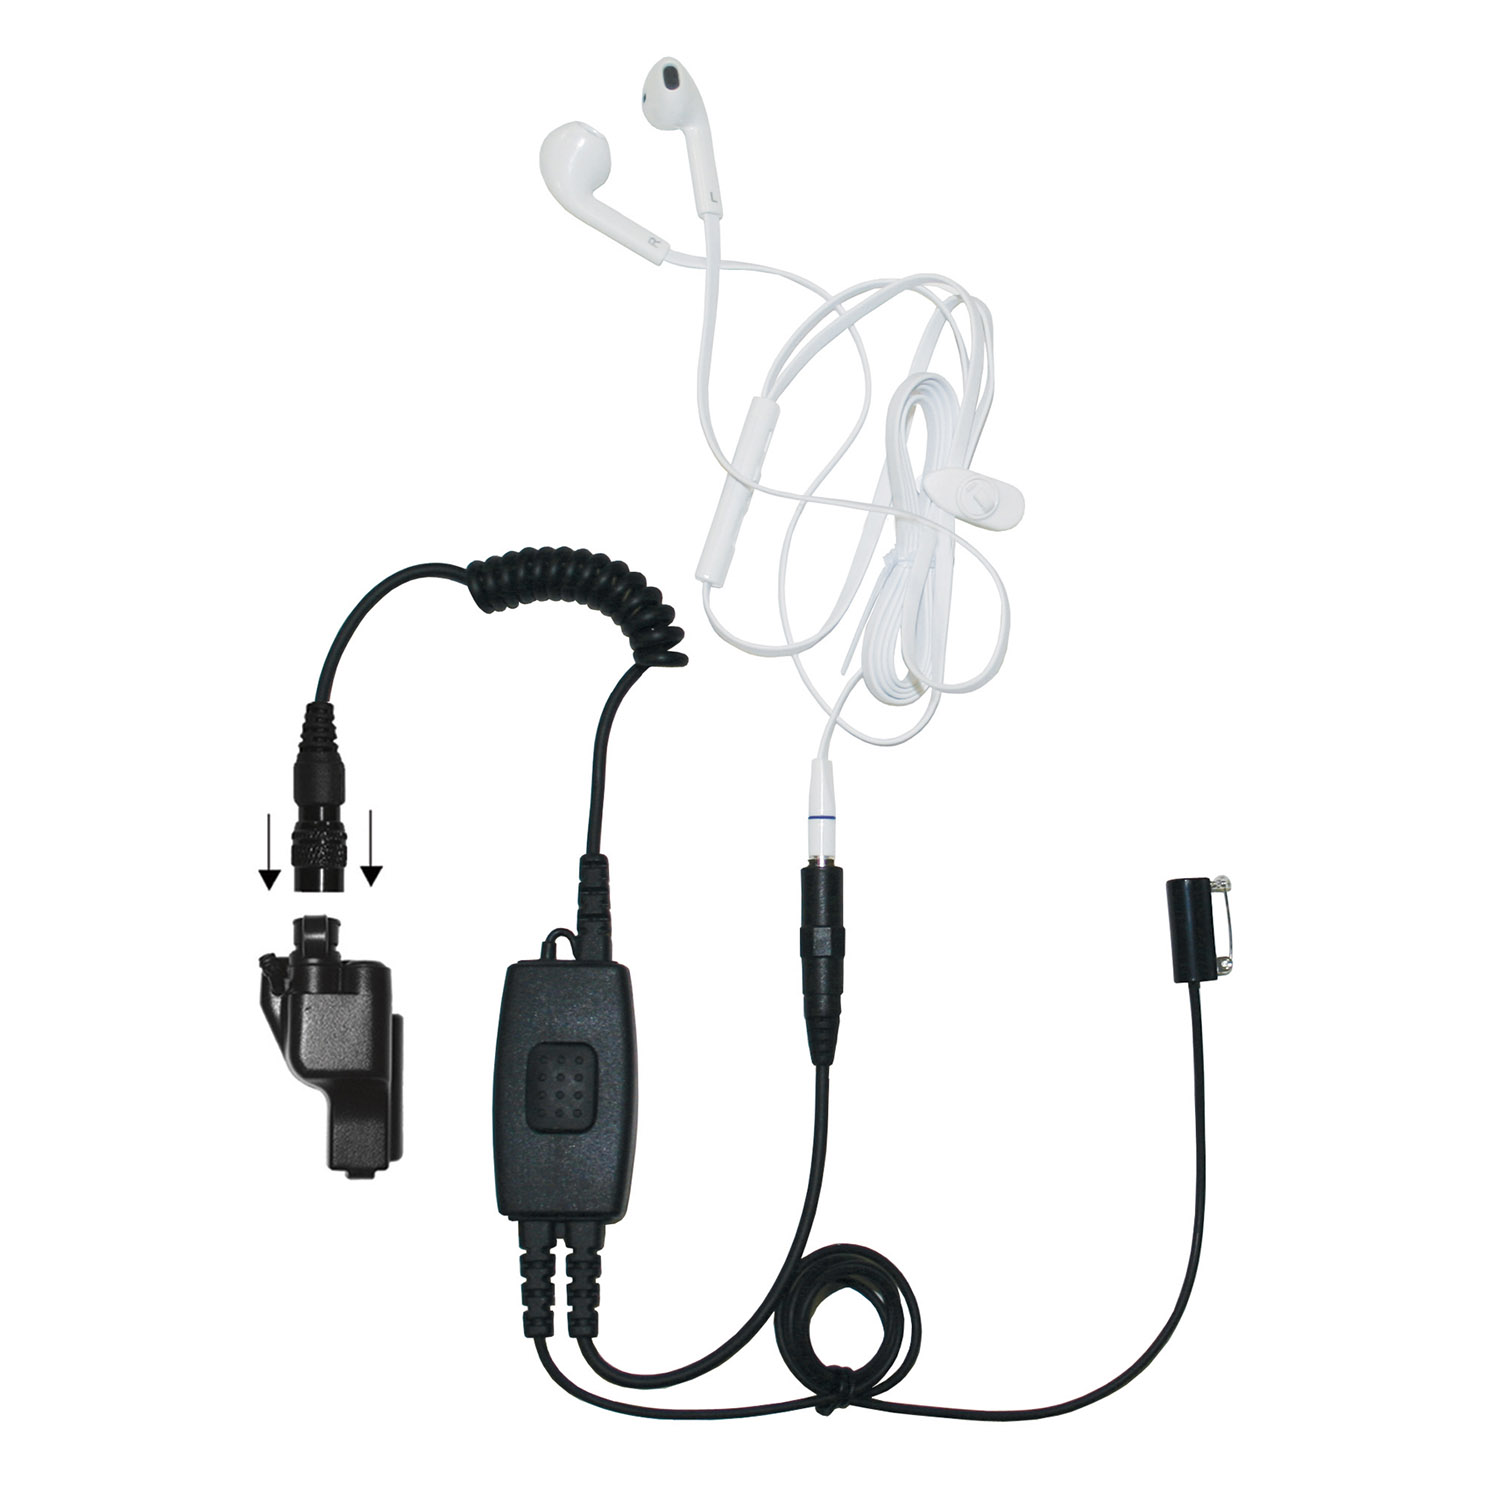 Ear Phone Connection Snake Covert Surveillance Kit